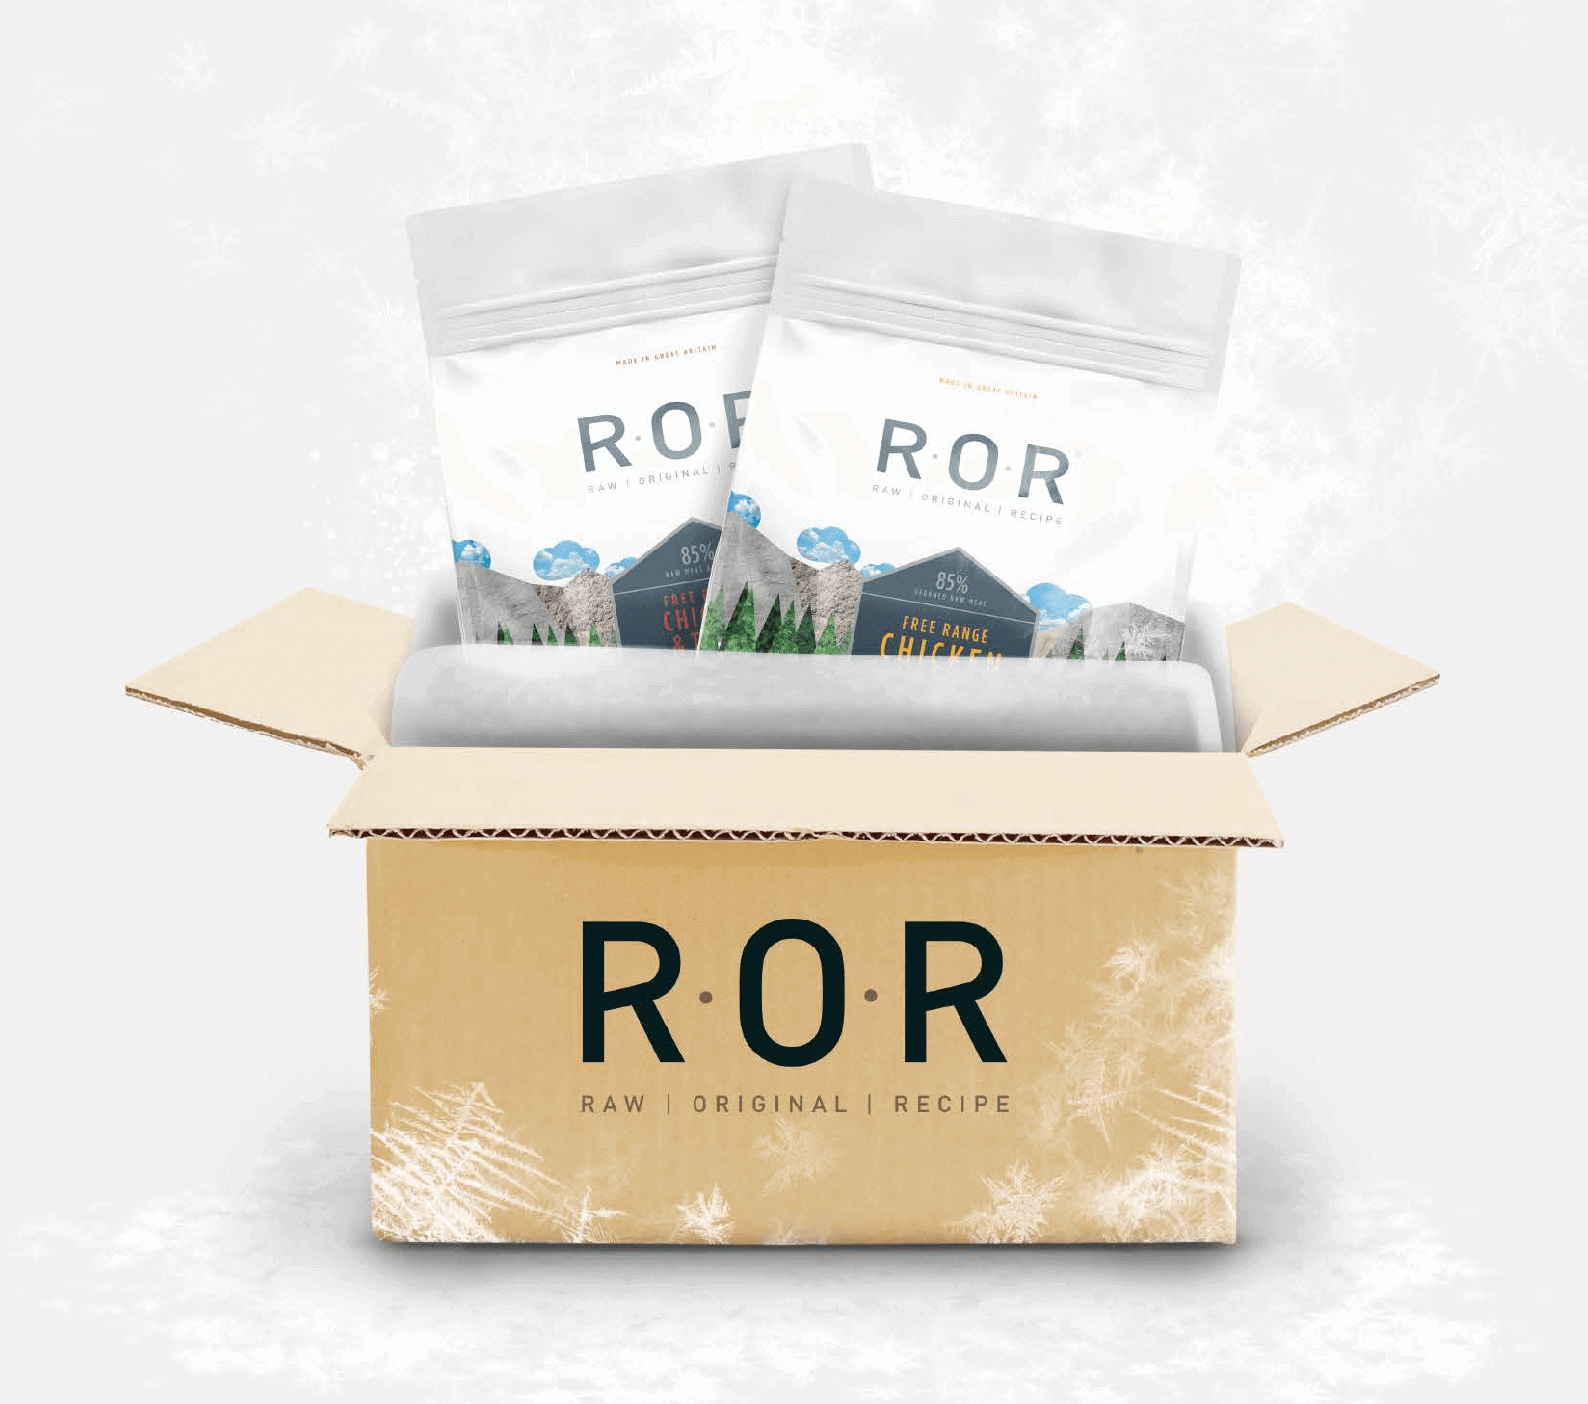 R.O.R Frozen Box